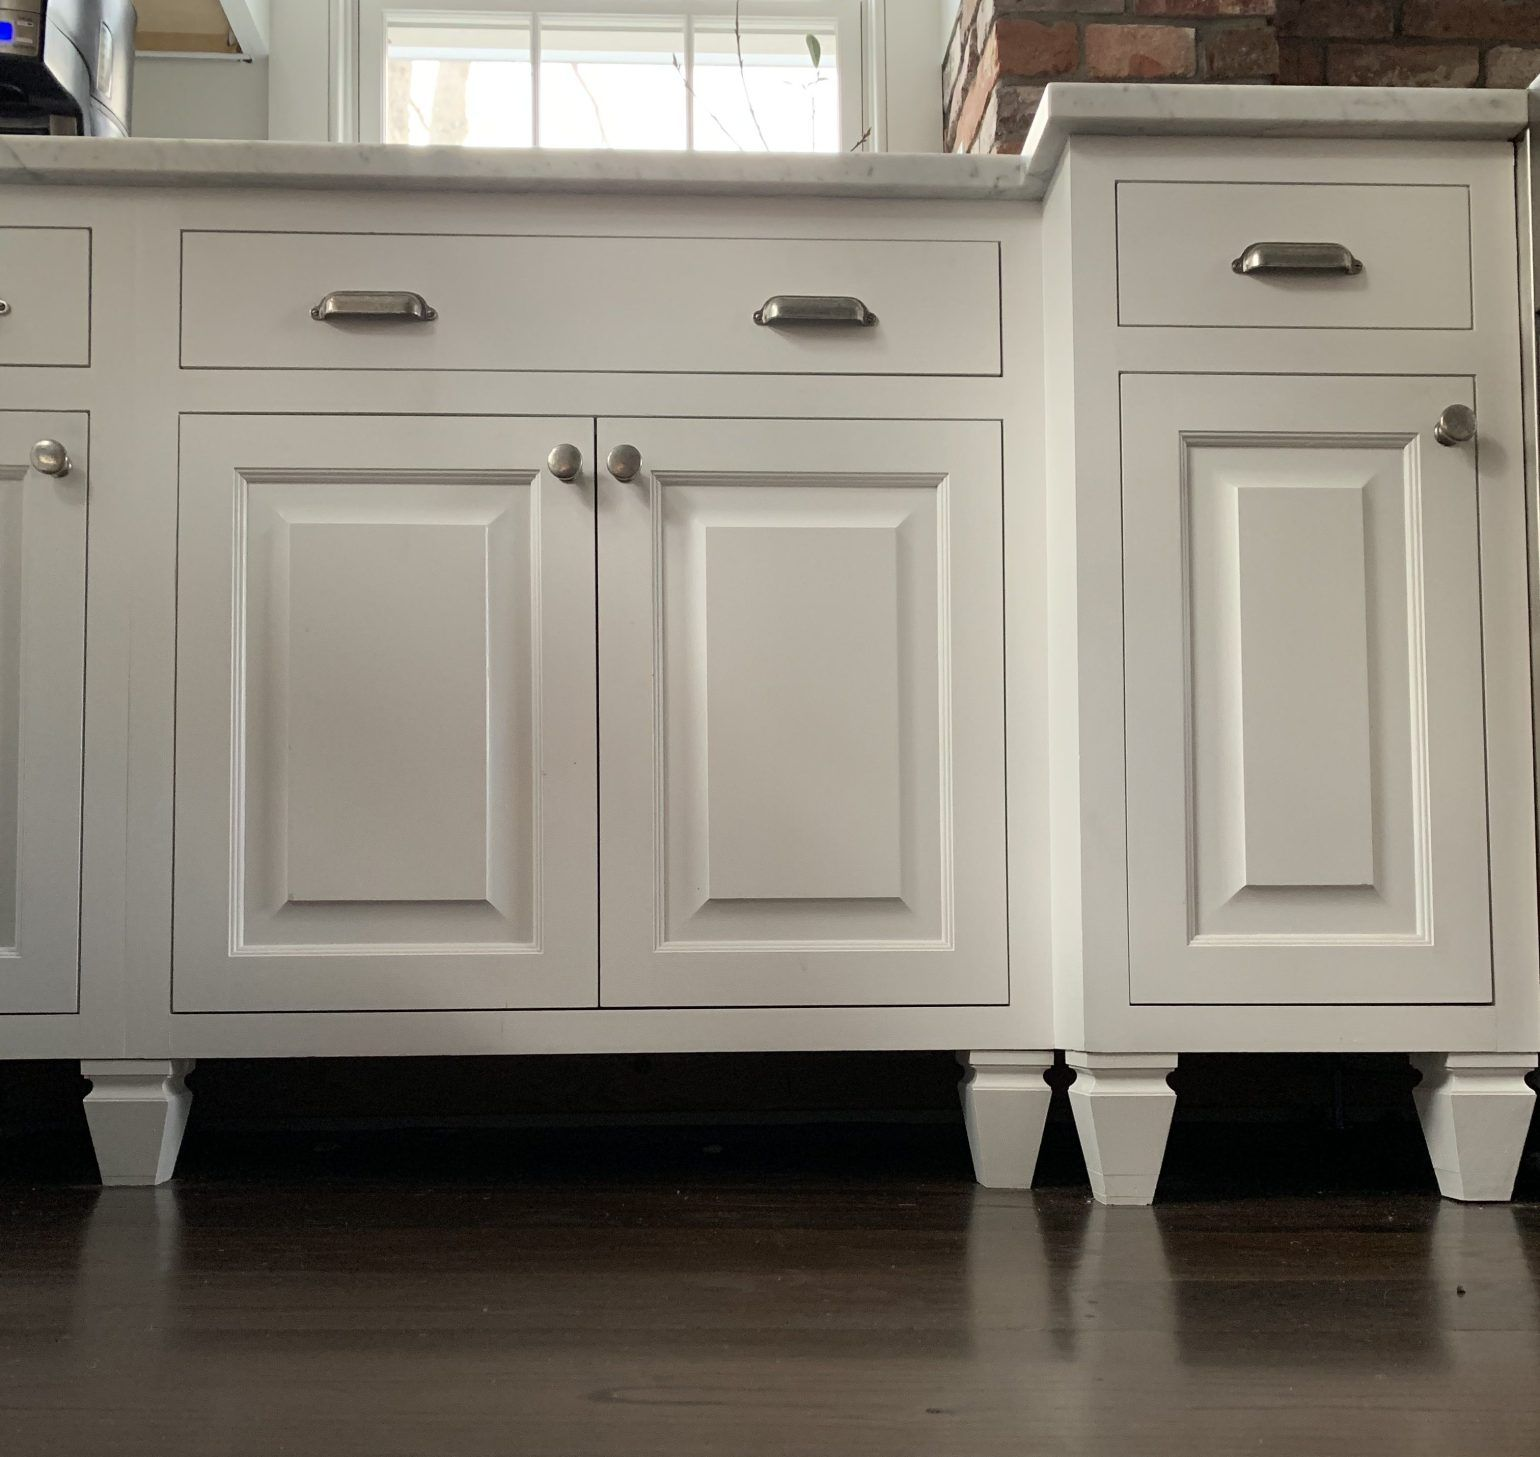 How And Why There Are No Toekicks Under My Kitchen Cabinets Farmstand Culture In 2020 Kitchen Cabinets That Look Like Furniture Kitchen Cabinets With Feet Free Standing Kitchen Cabinets